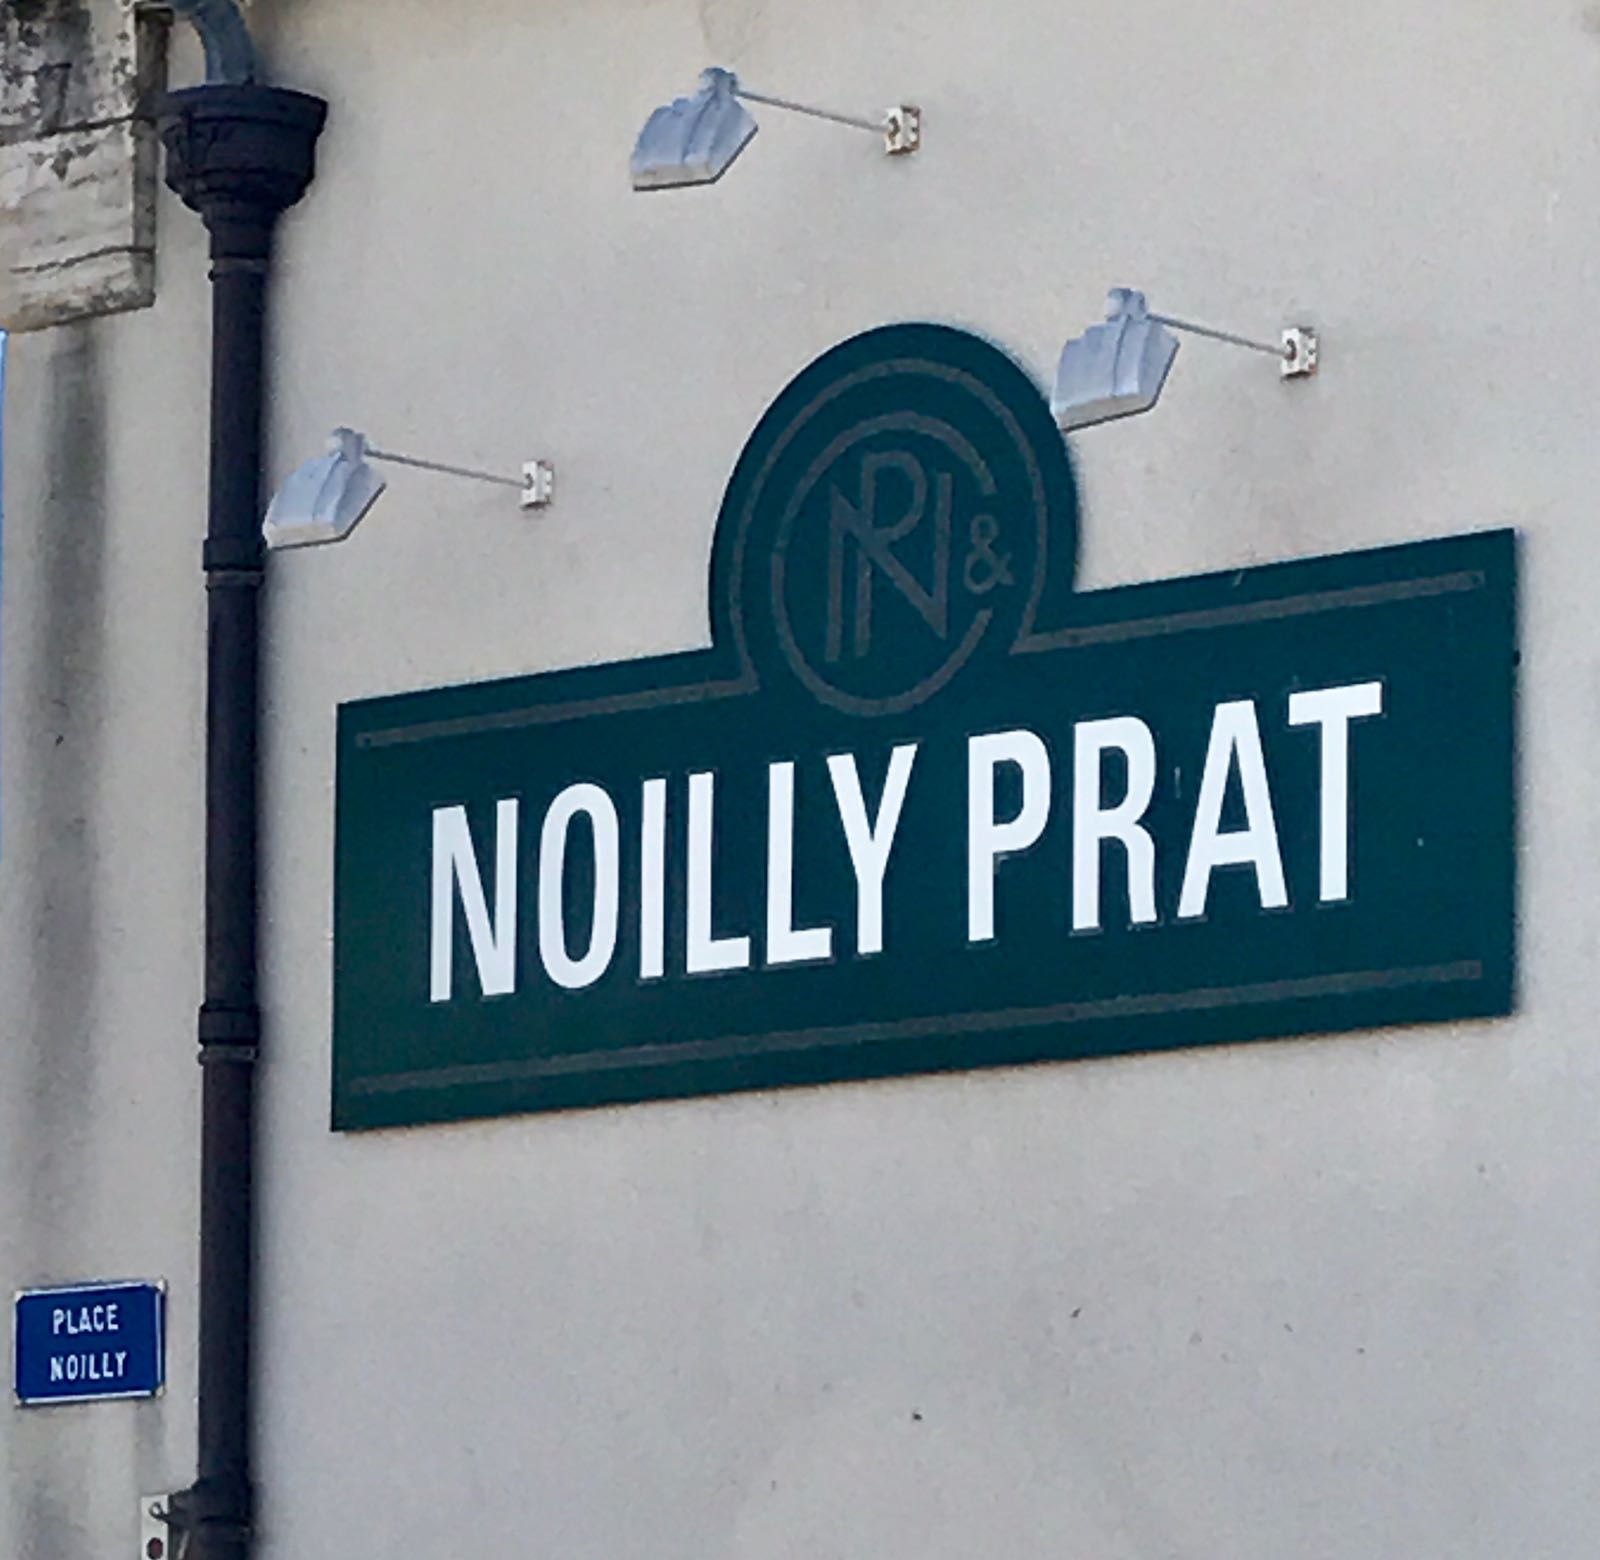 The sign on the wall of the Noilly Prat factory in Marseillan